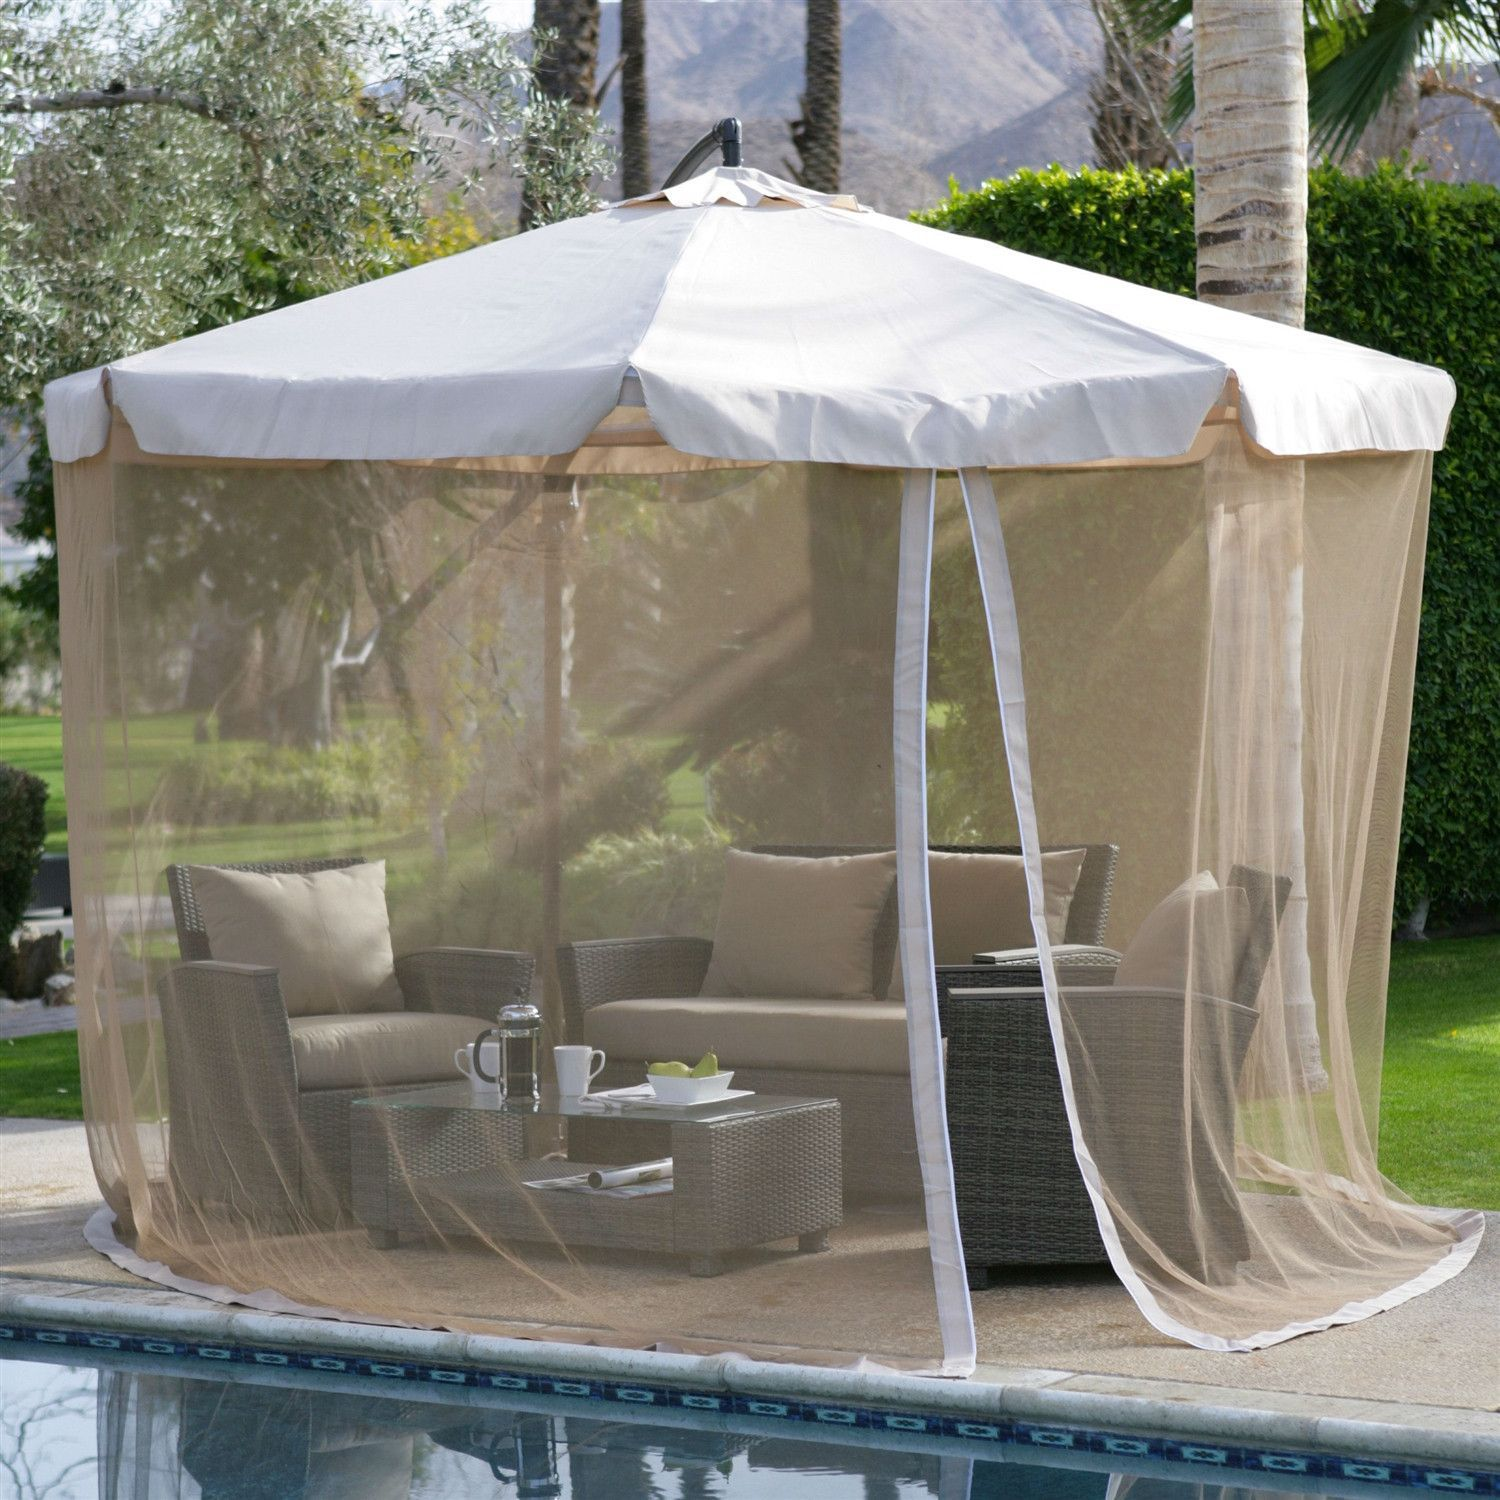 Stay In The Shade With This Modern Cantilever Offset Patio Umbrella In Tan  With Removable Netting. This Large Offset Umbrella Is Just Right By The  Pool Or